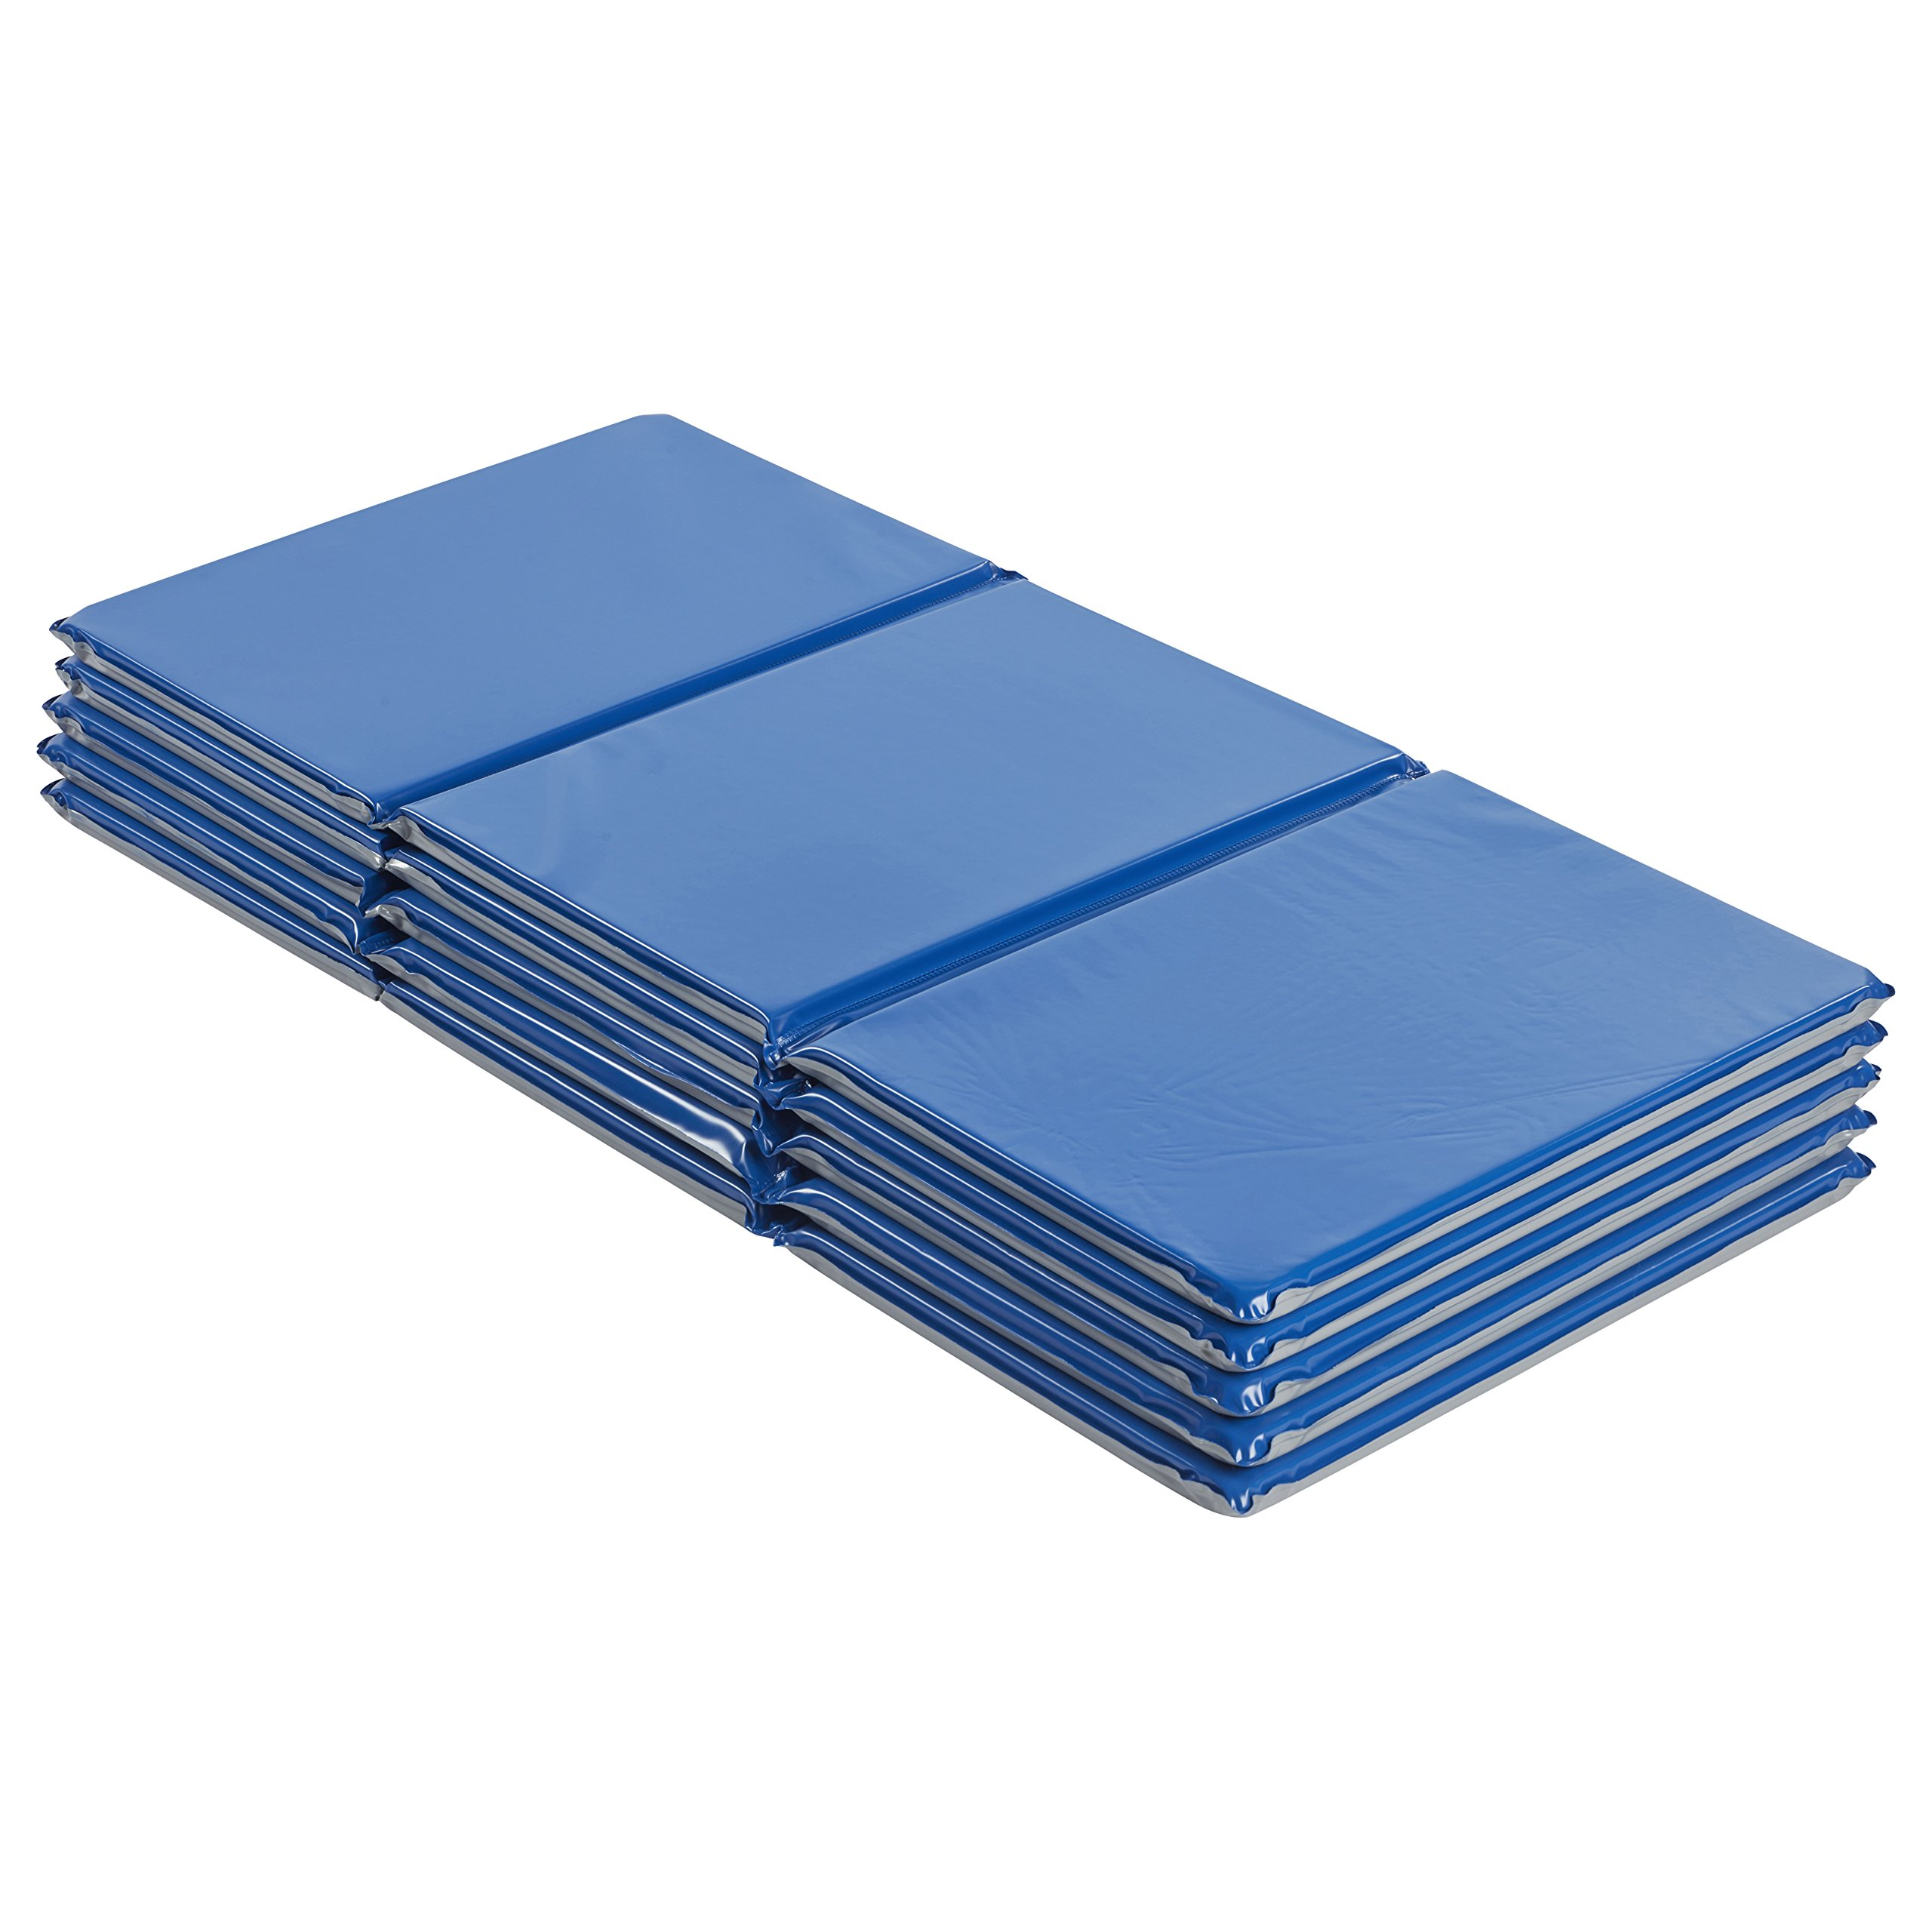 ECR4Kids Everyday 3-Fold Daycare Rest Mat, Blue and Grey (1'' Thick) - 5 Pack by ECR4Kids